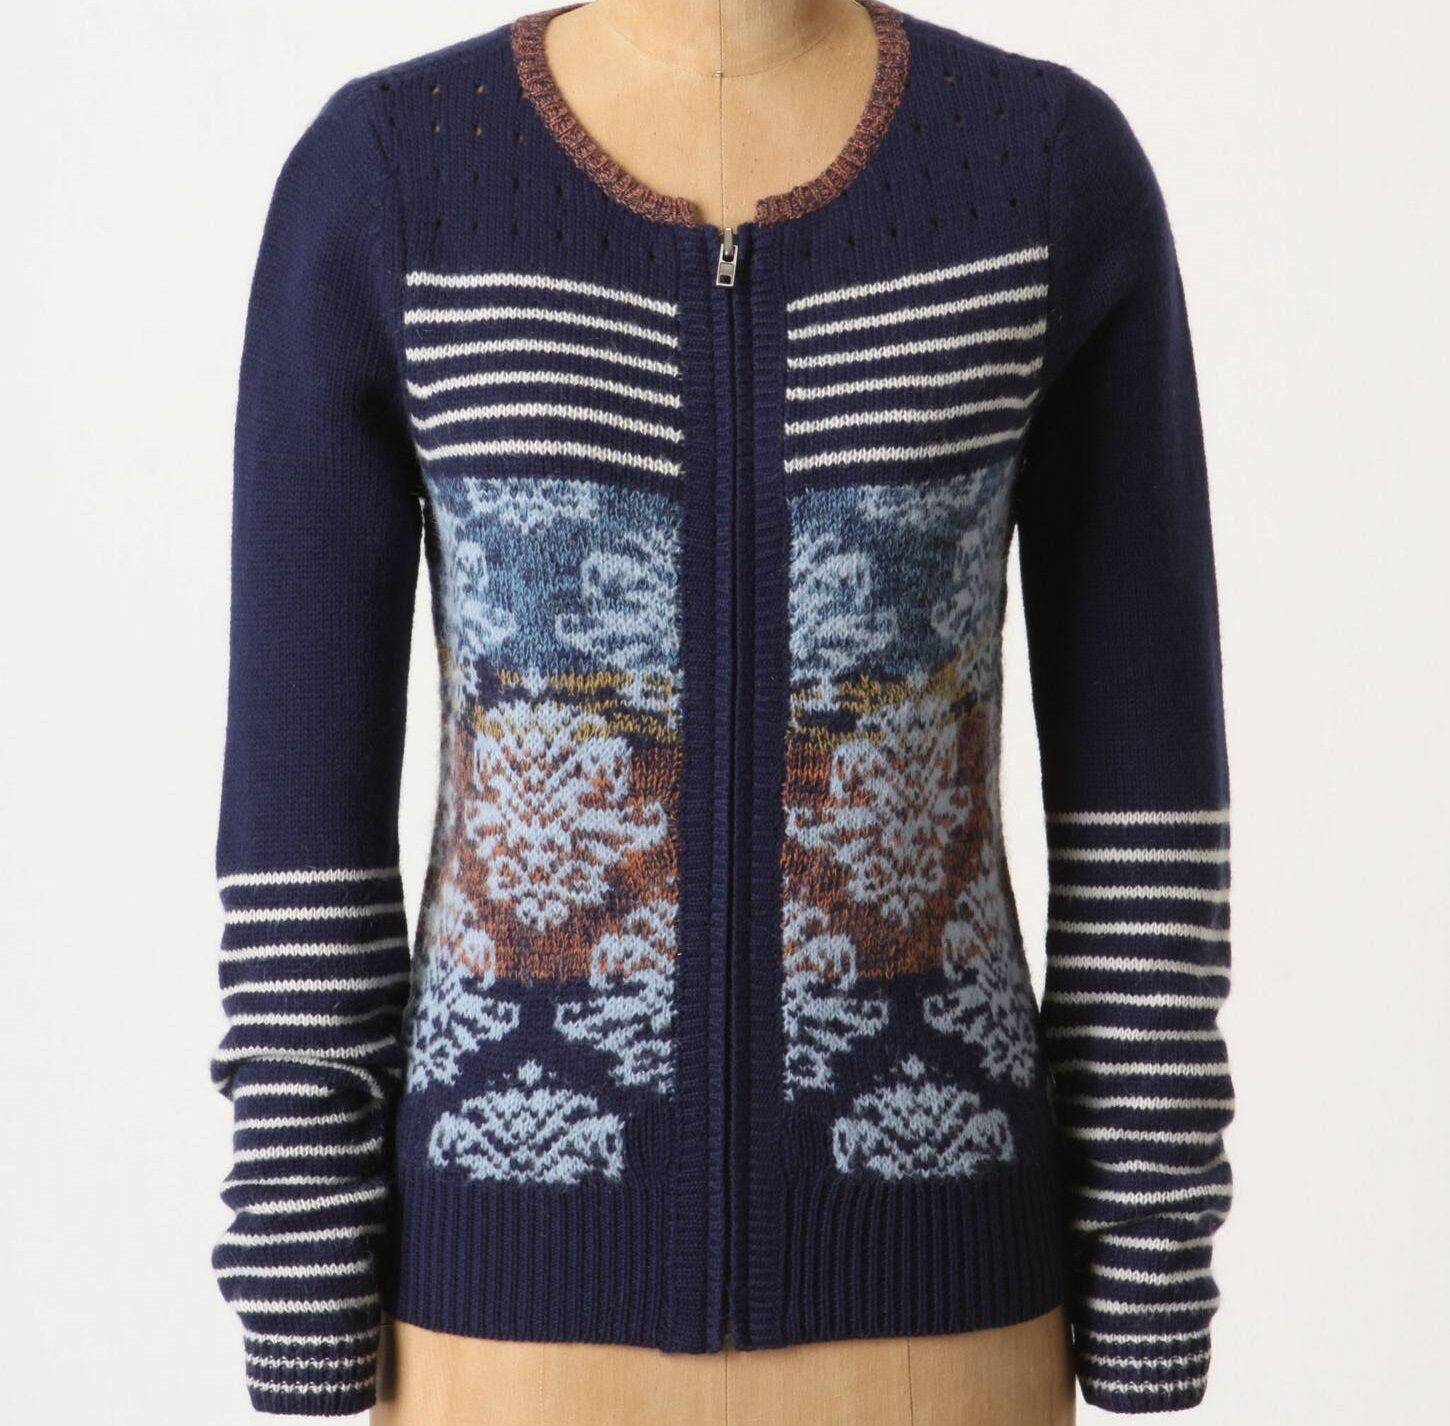 Sparrow Arras Cardigan Sweater Top Size XS, S, M, L bluee NW ANTHROPOLOGIE Tag